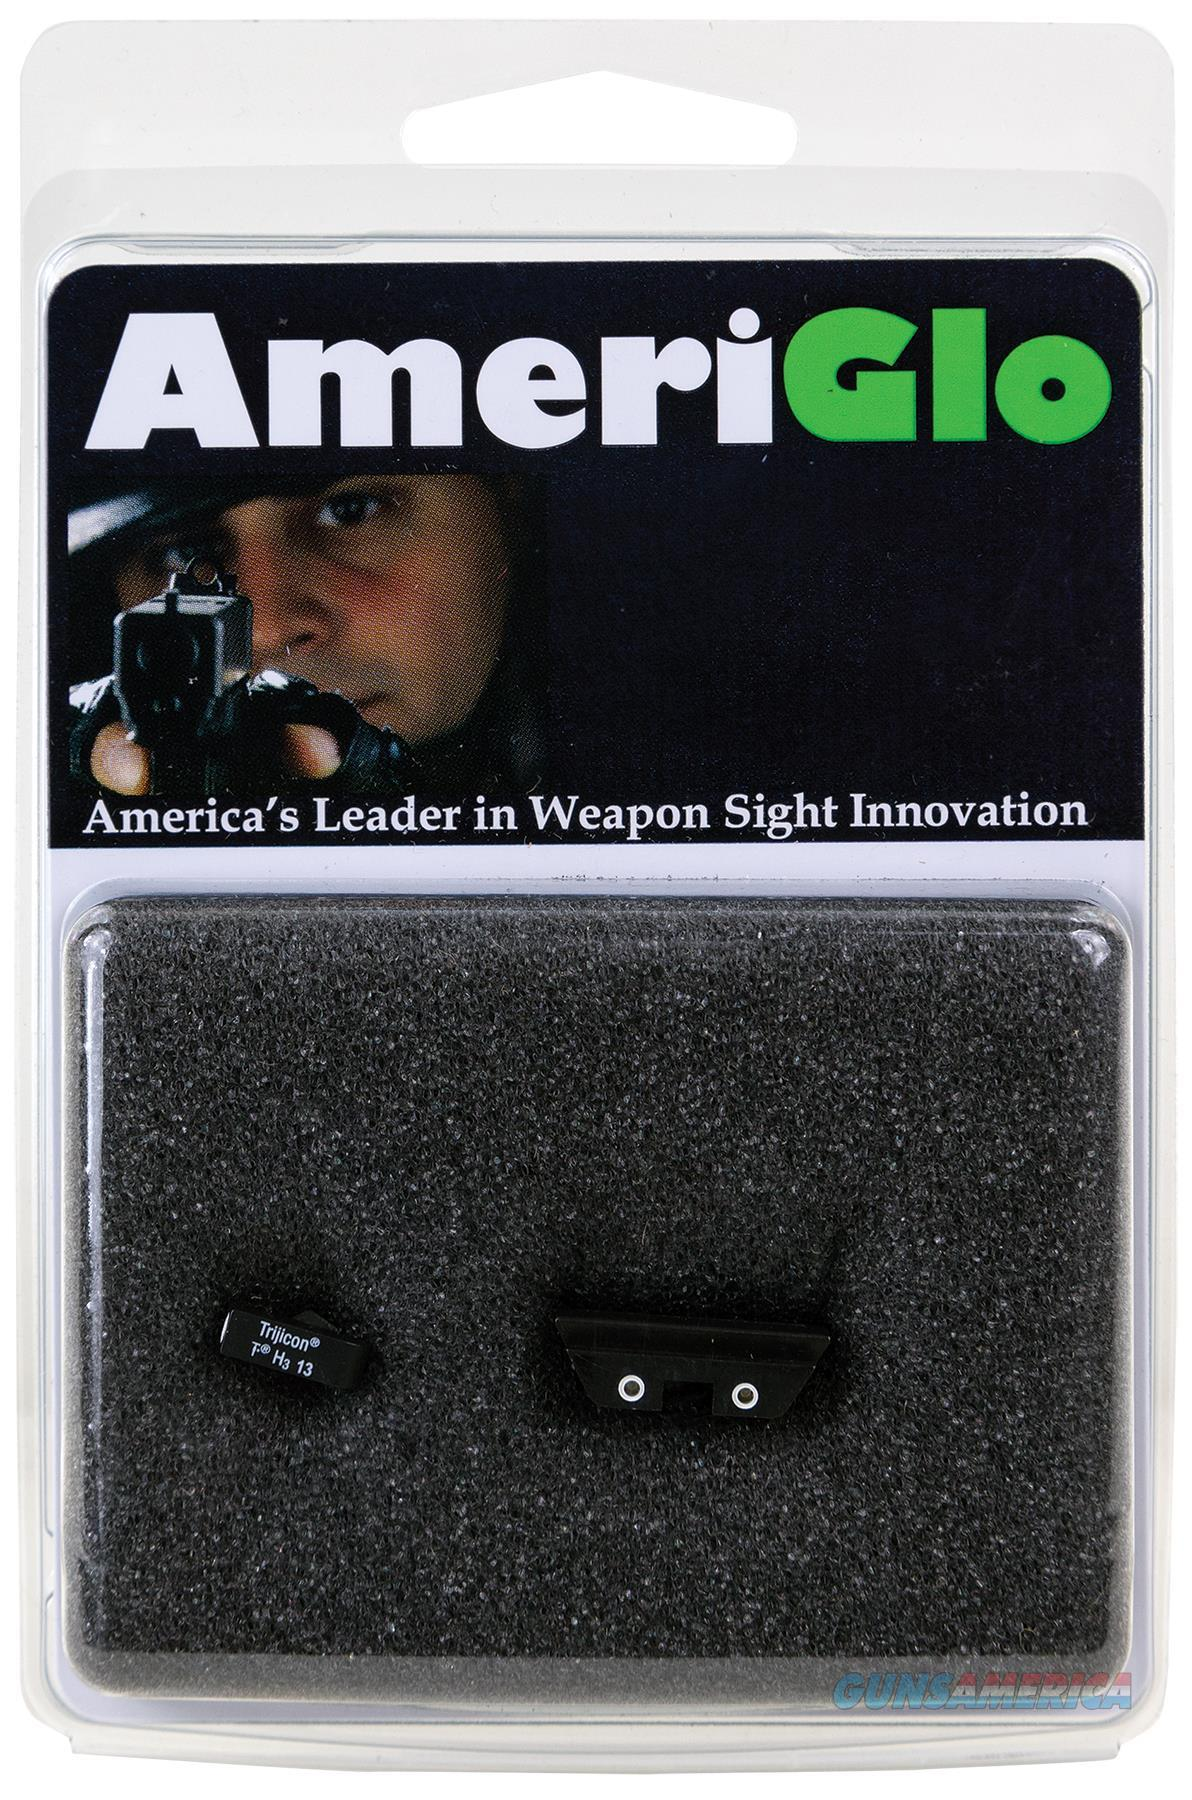 Ameriglo Gl115 Classic 3 Dot Night Sight Glock 17/19/22/23/24/26/27/33/34/35/37/38/39 Green Tritium W/White Outline Yellow W/ White Outline Black GL-115  Non-Guns > Iron/Metal/Peep Sights